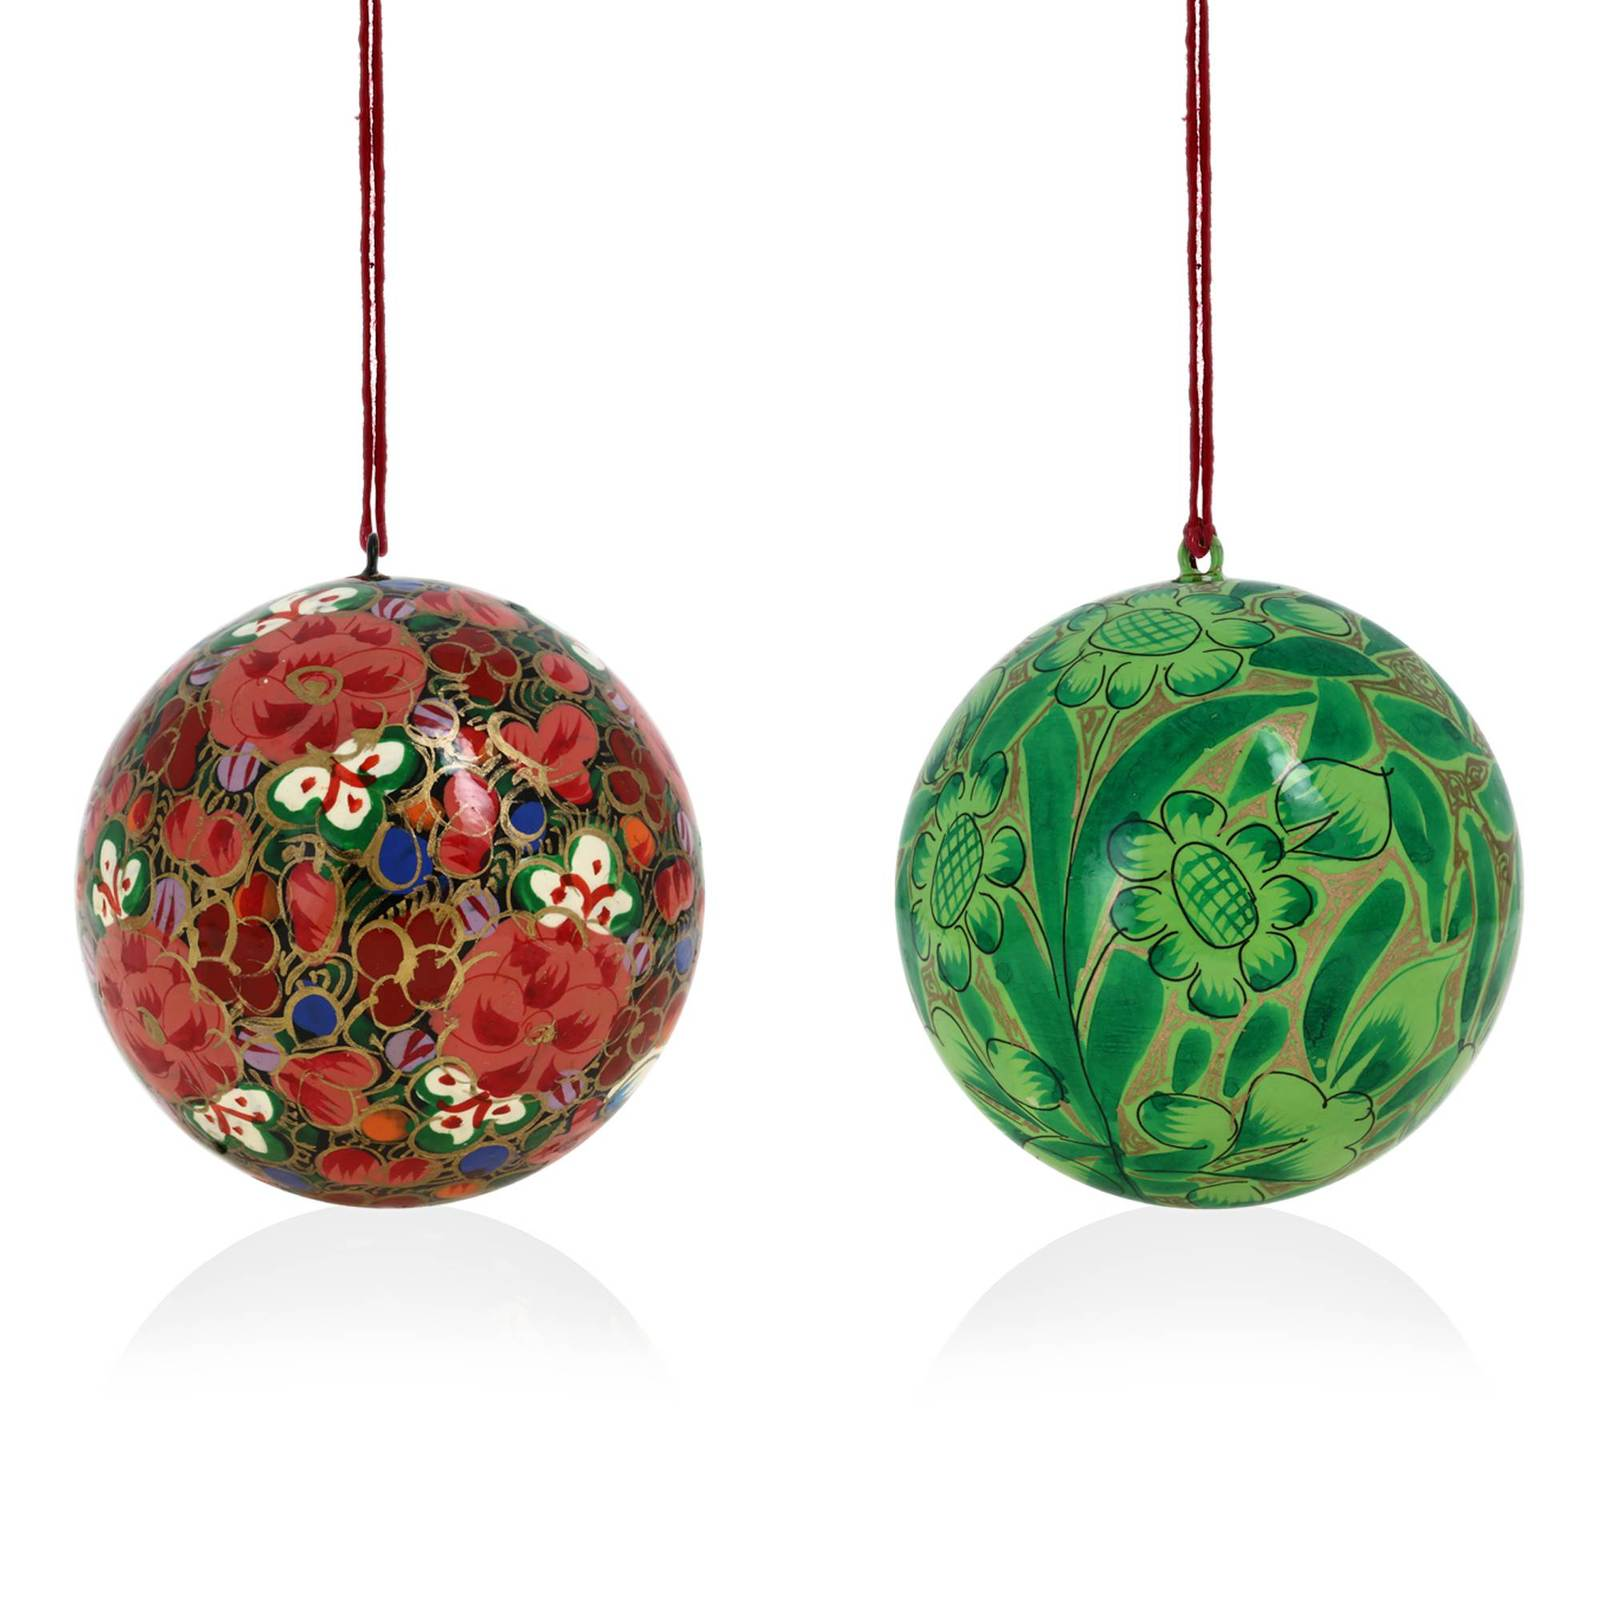 Decoration christmas ornaments handmade paper mache for Hanging christmas decorations